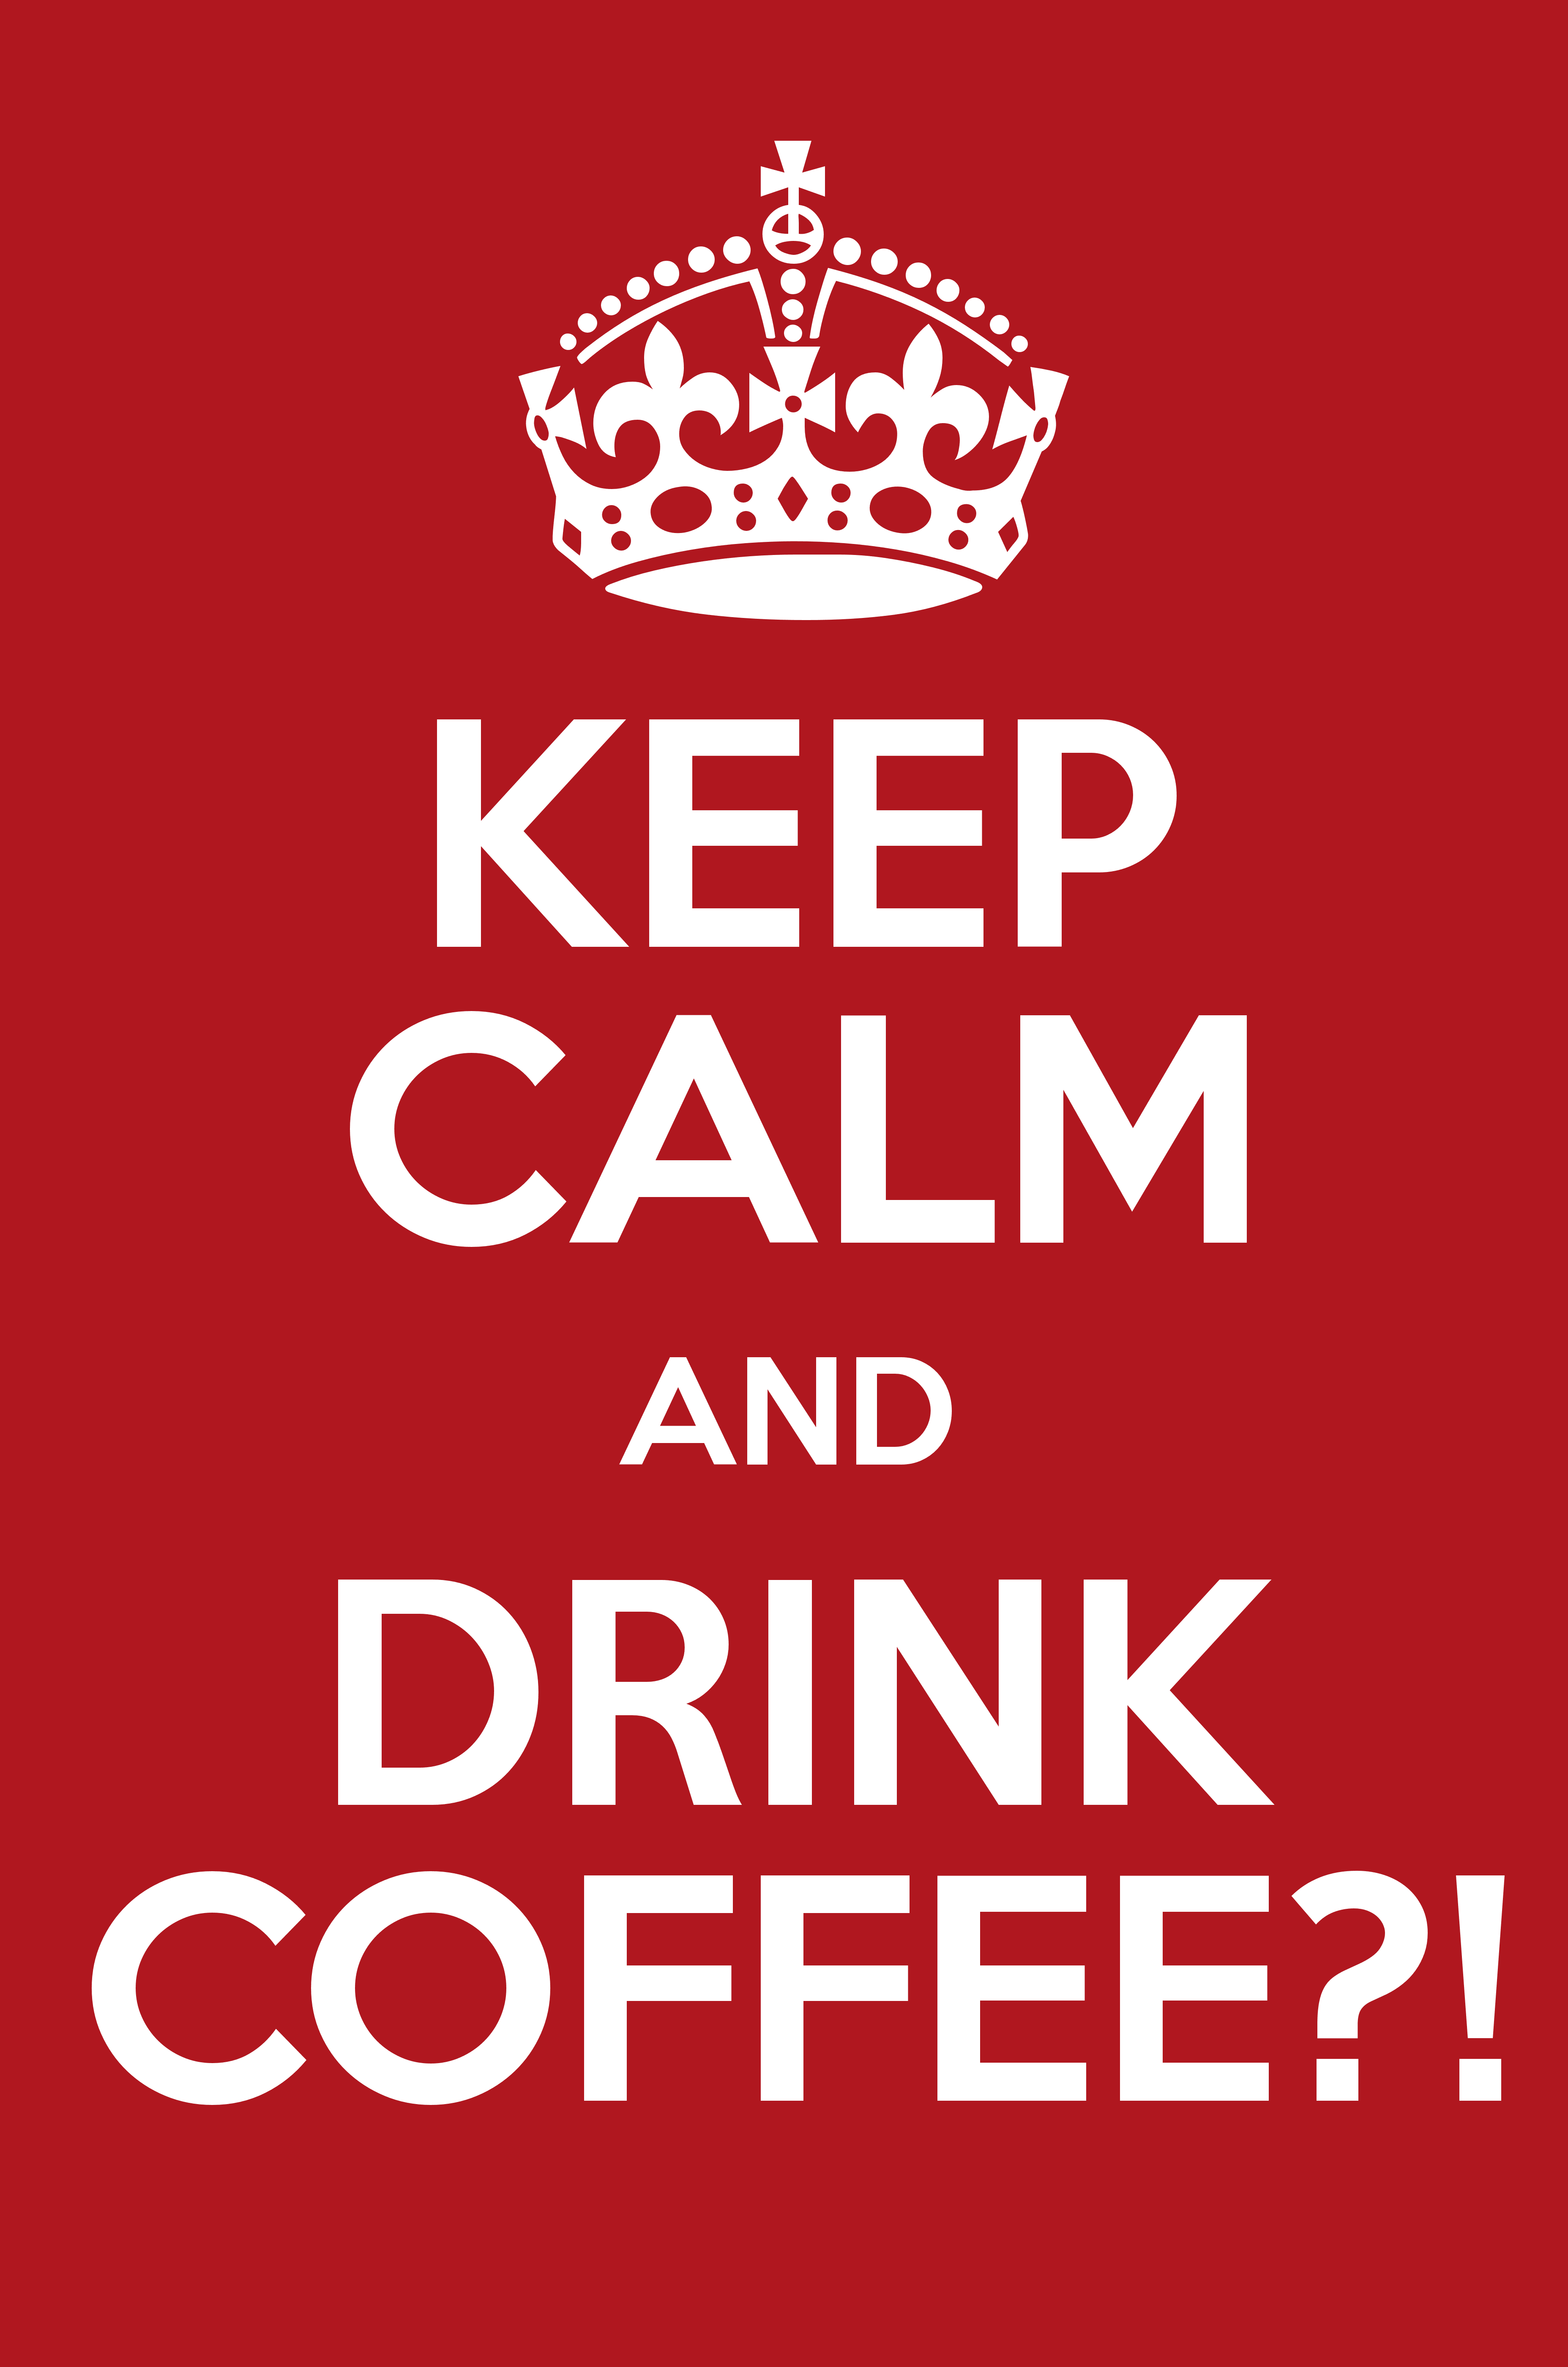 how to make coffee poster for work